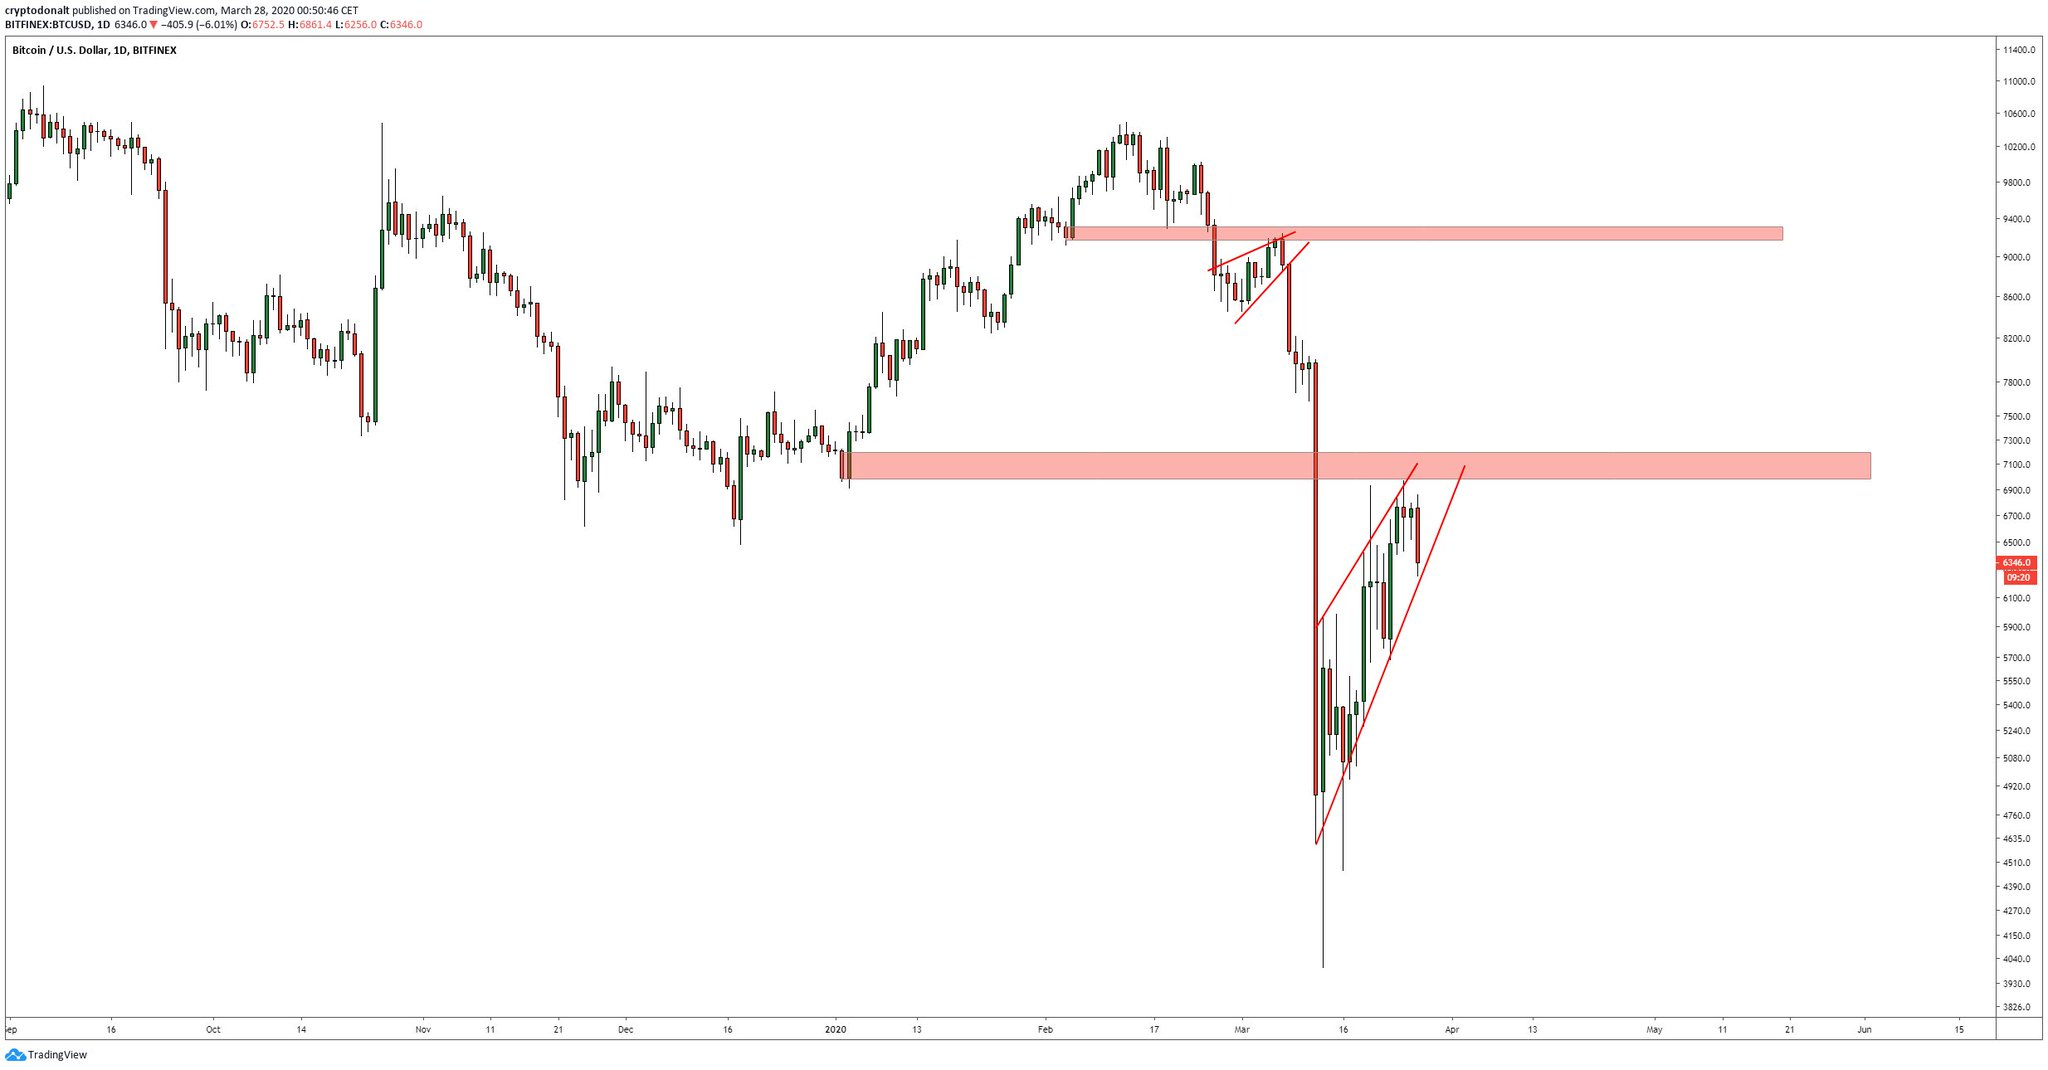 Rising wedge Bitcoin pattern